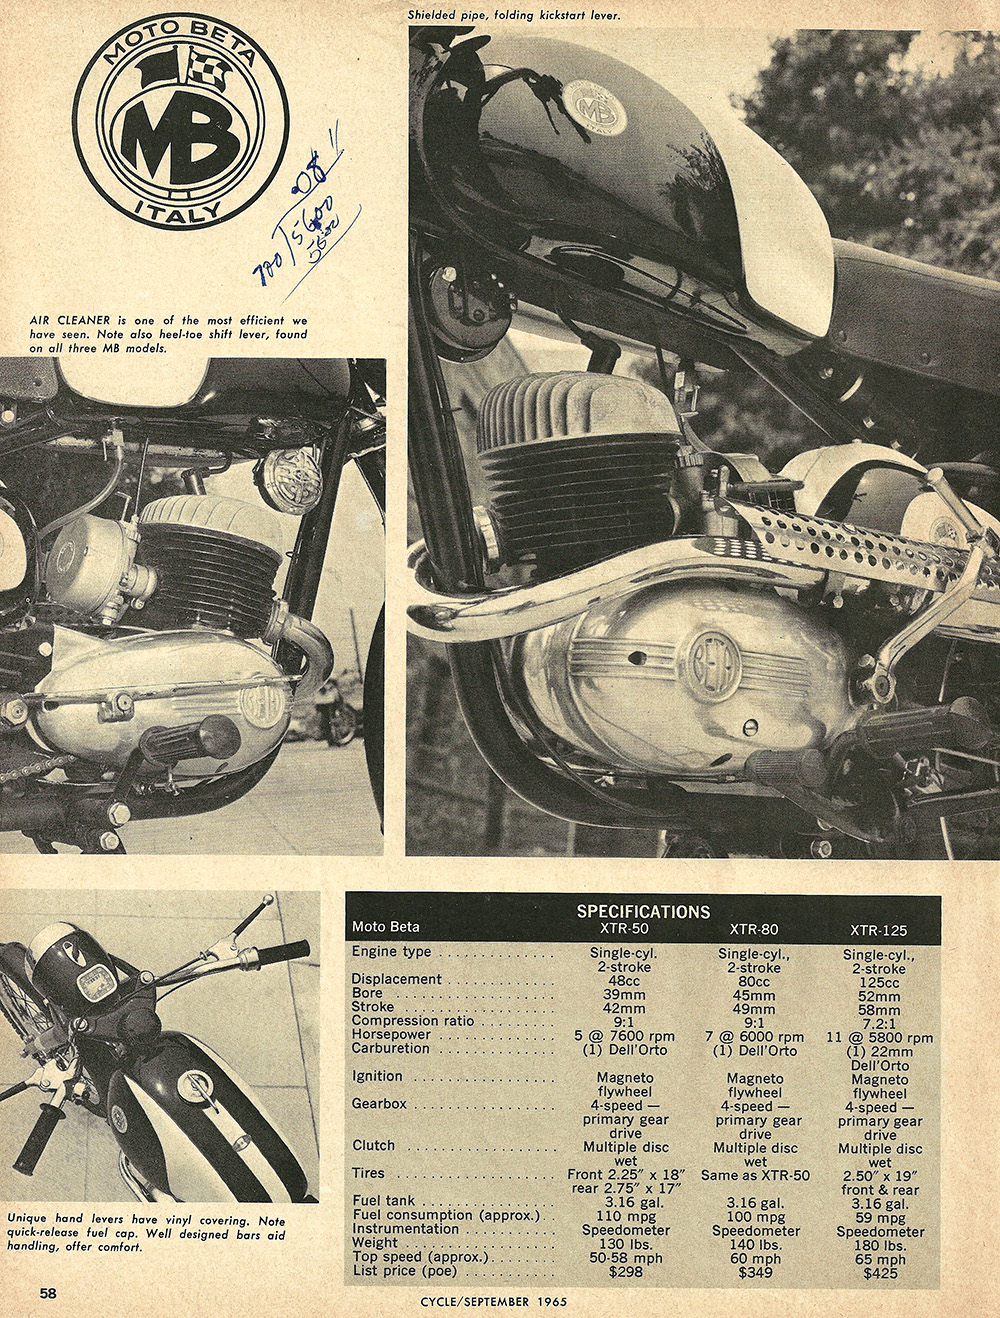 1966 Moto Beta 50cc 80cc 125cc road test 3.JPG